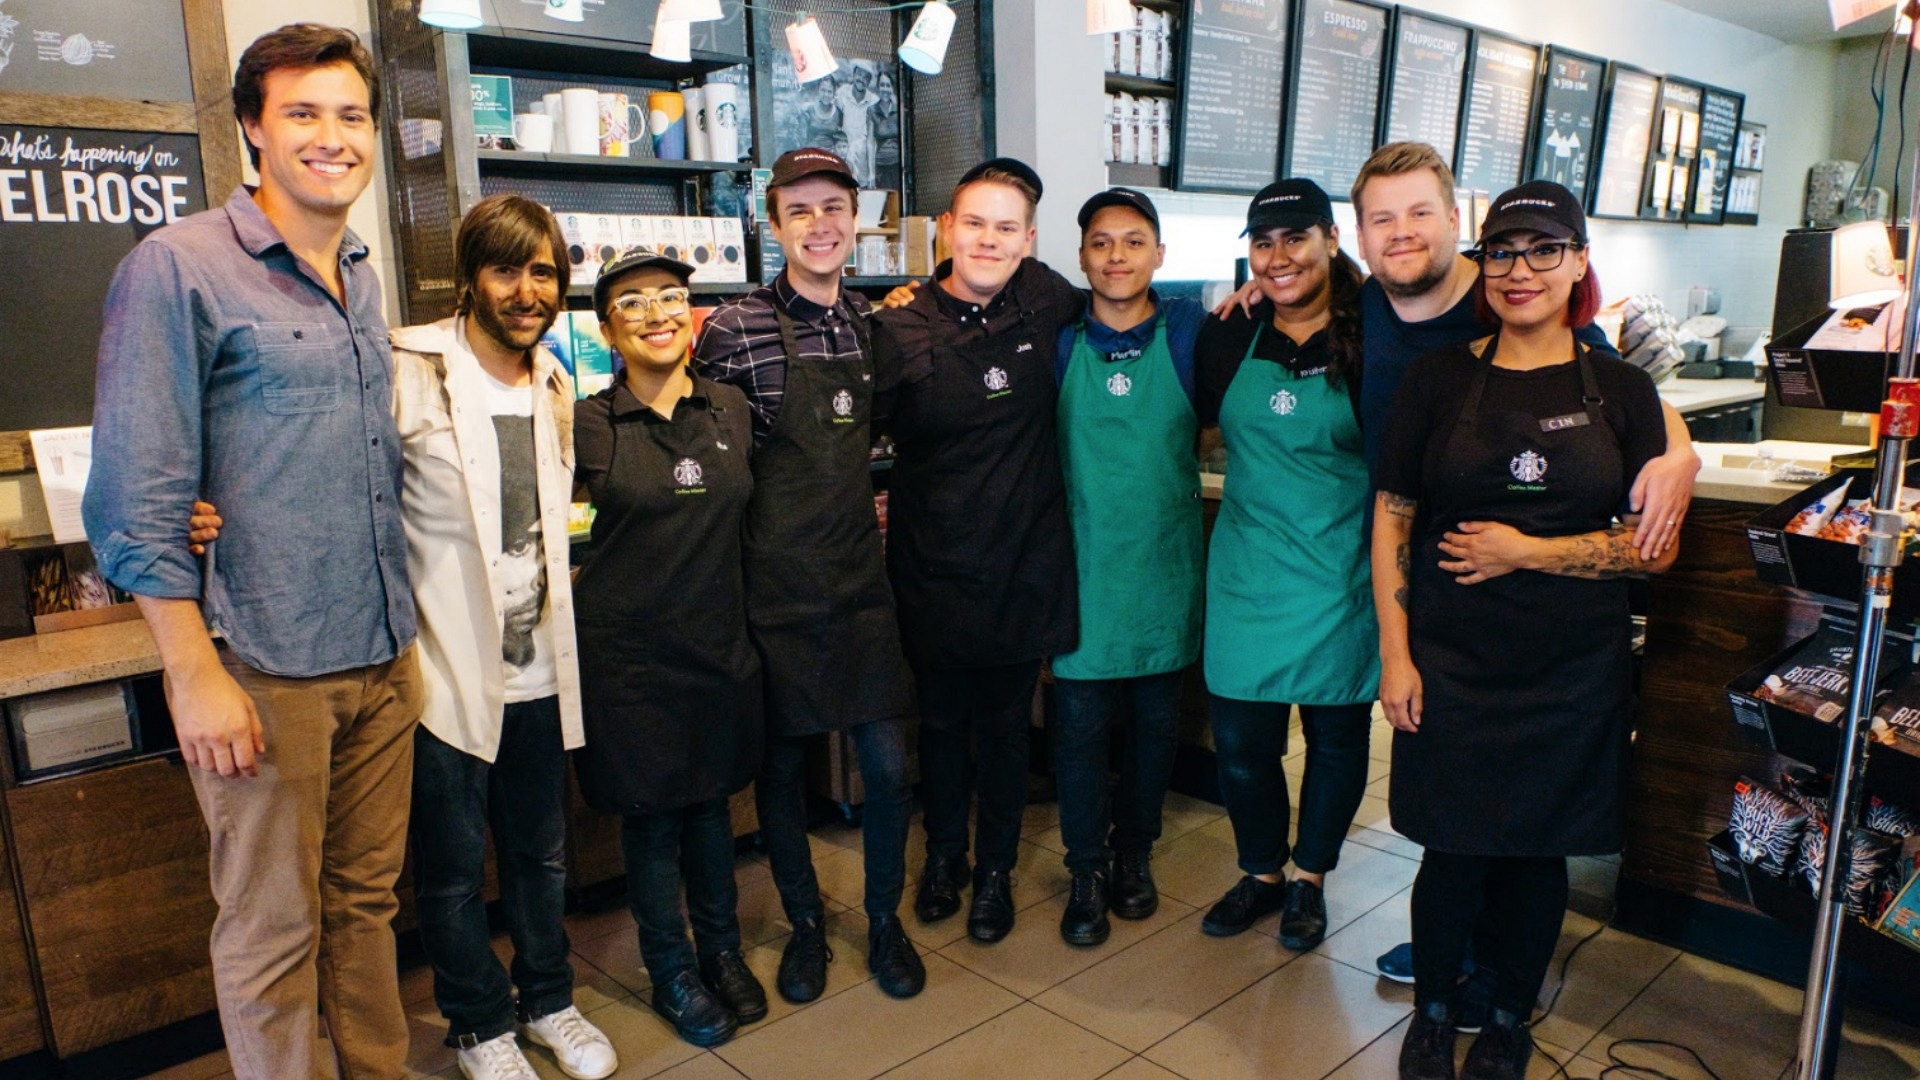 Thank you to the amazing Starbucks crew for putting up with our shenanigans!